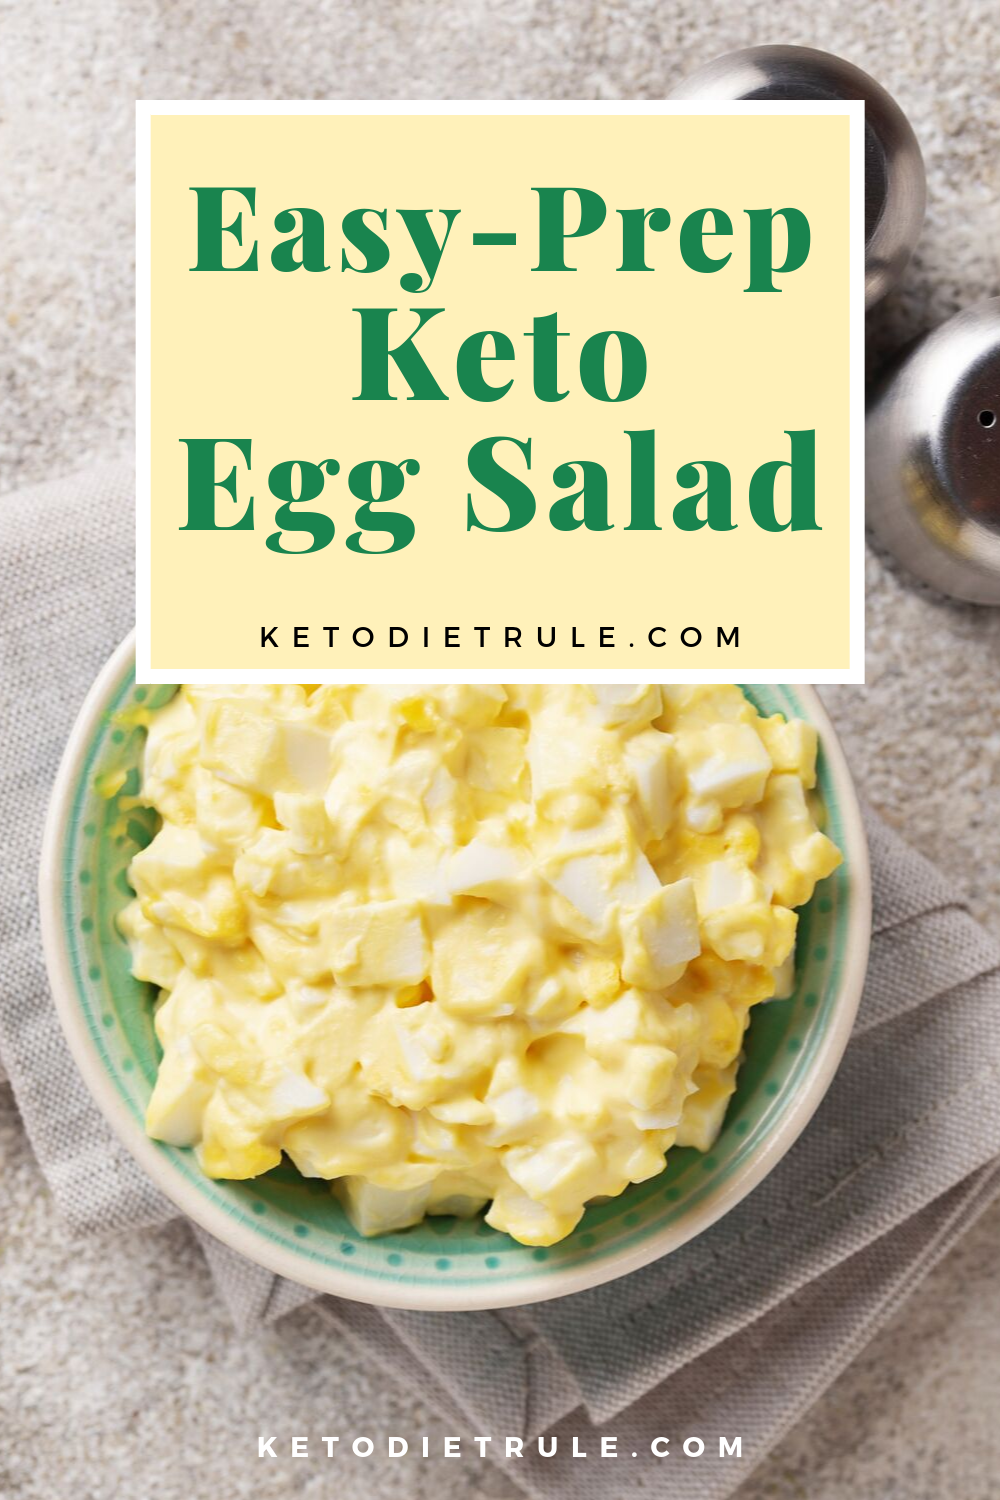 Egg Salad Recipe For Weight Loss